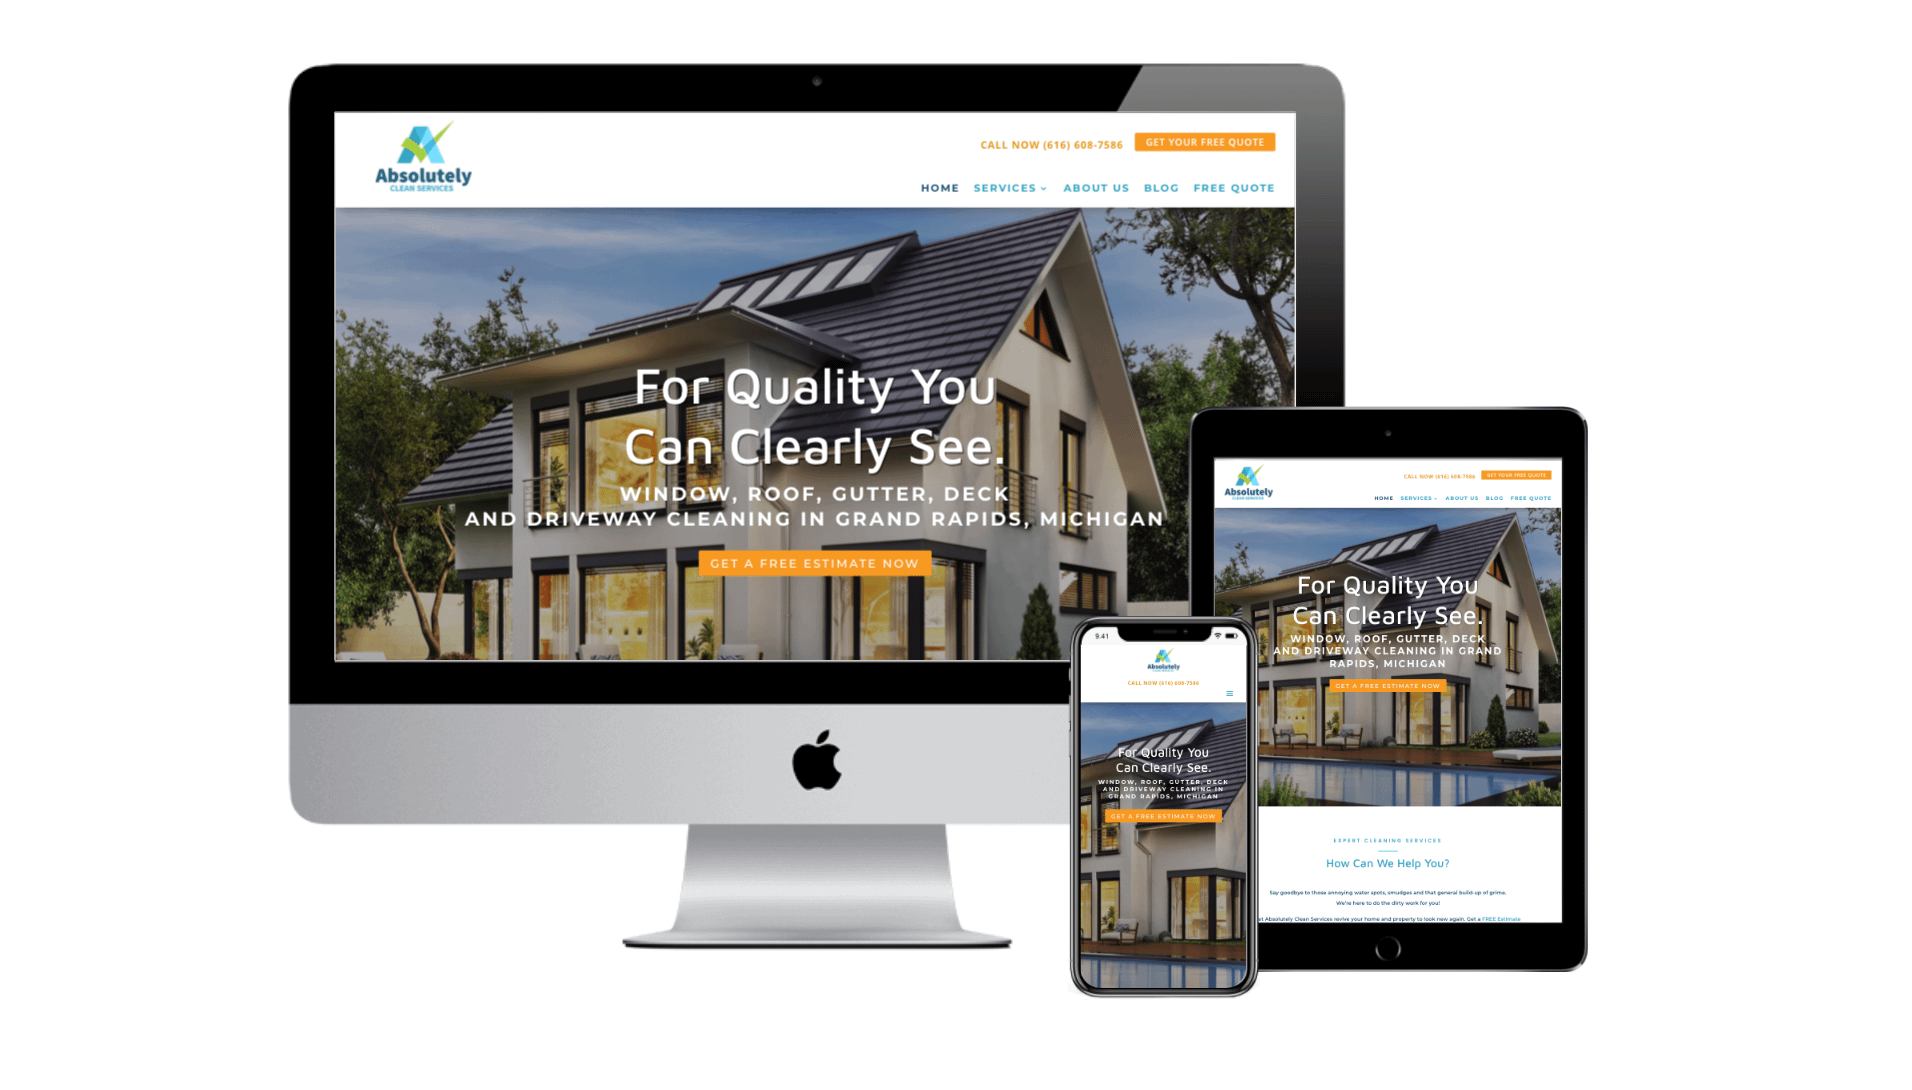 Absolutely Clean Services Website Redesign